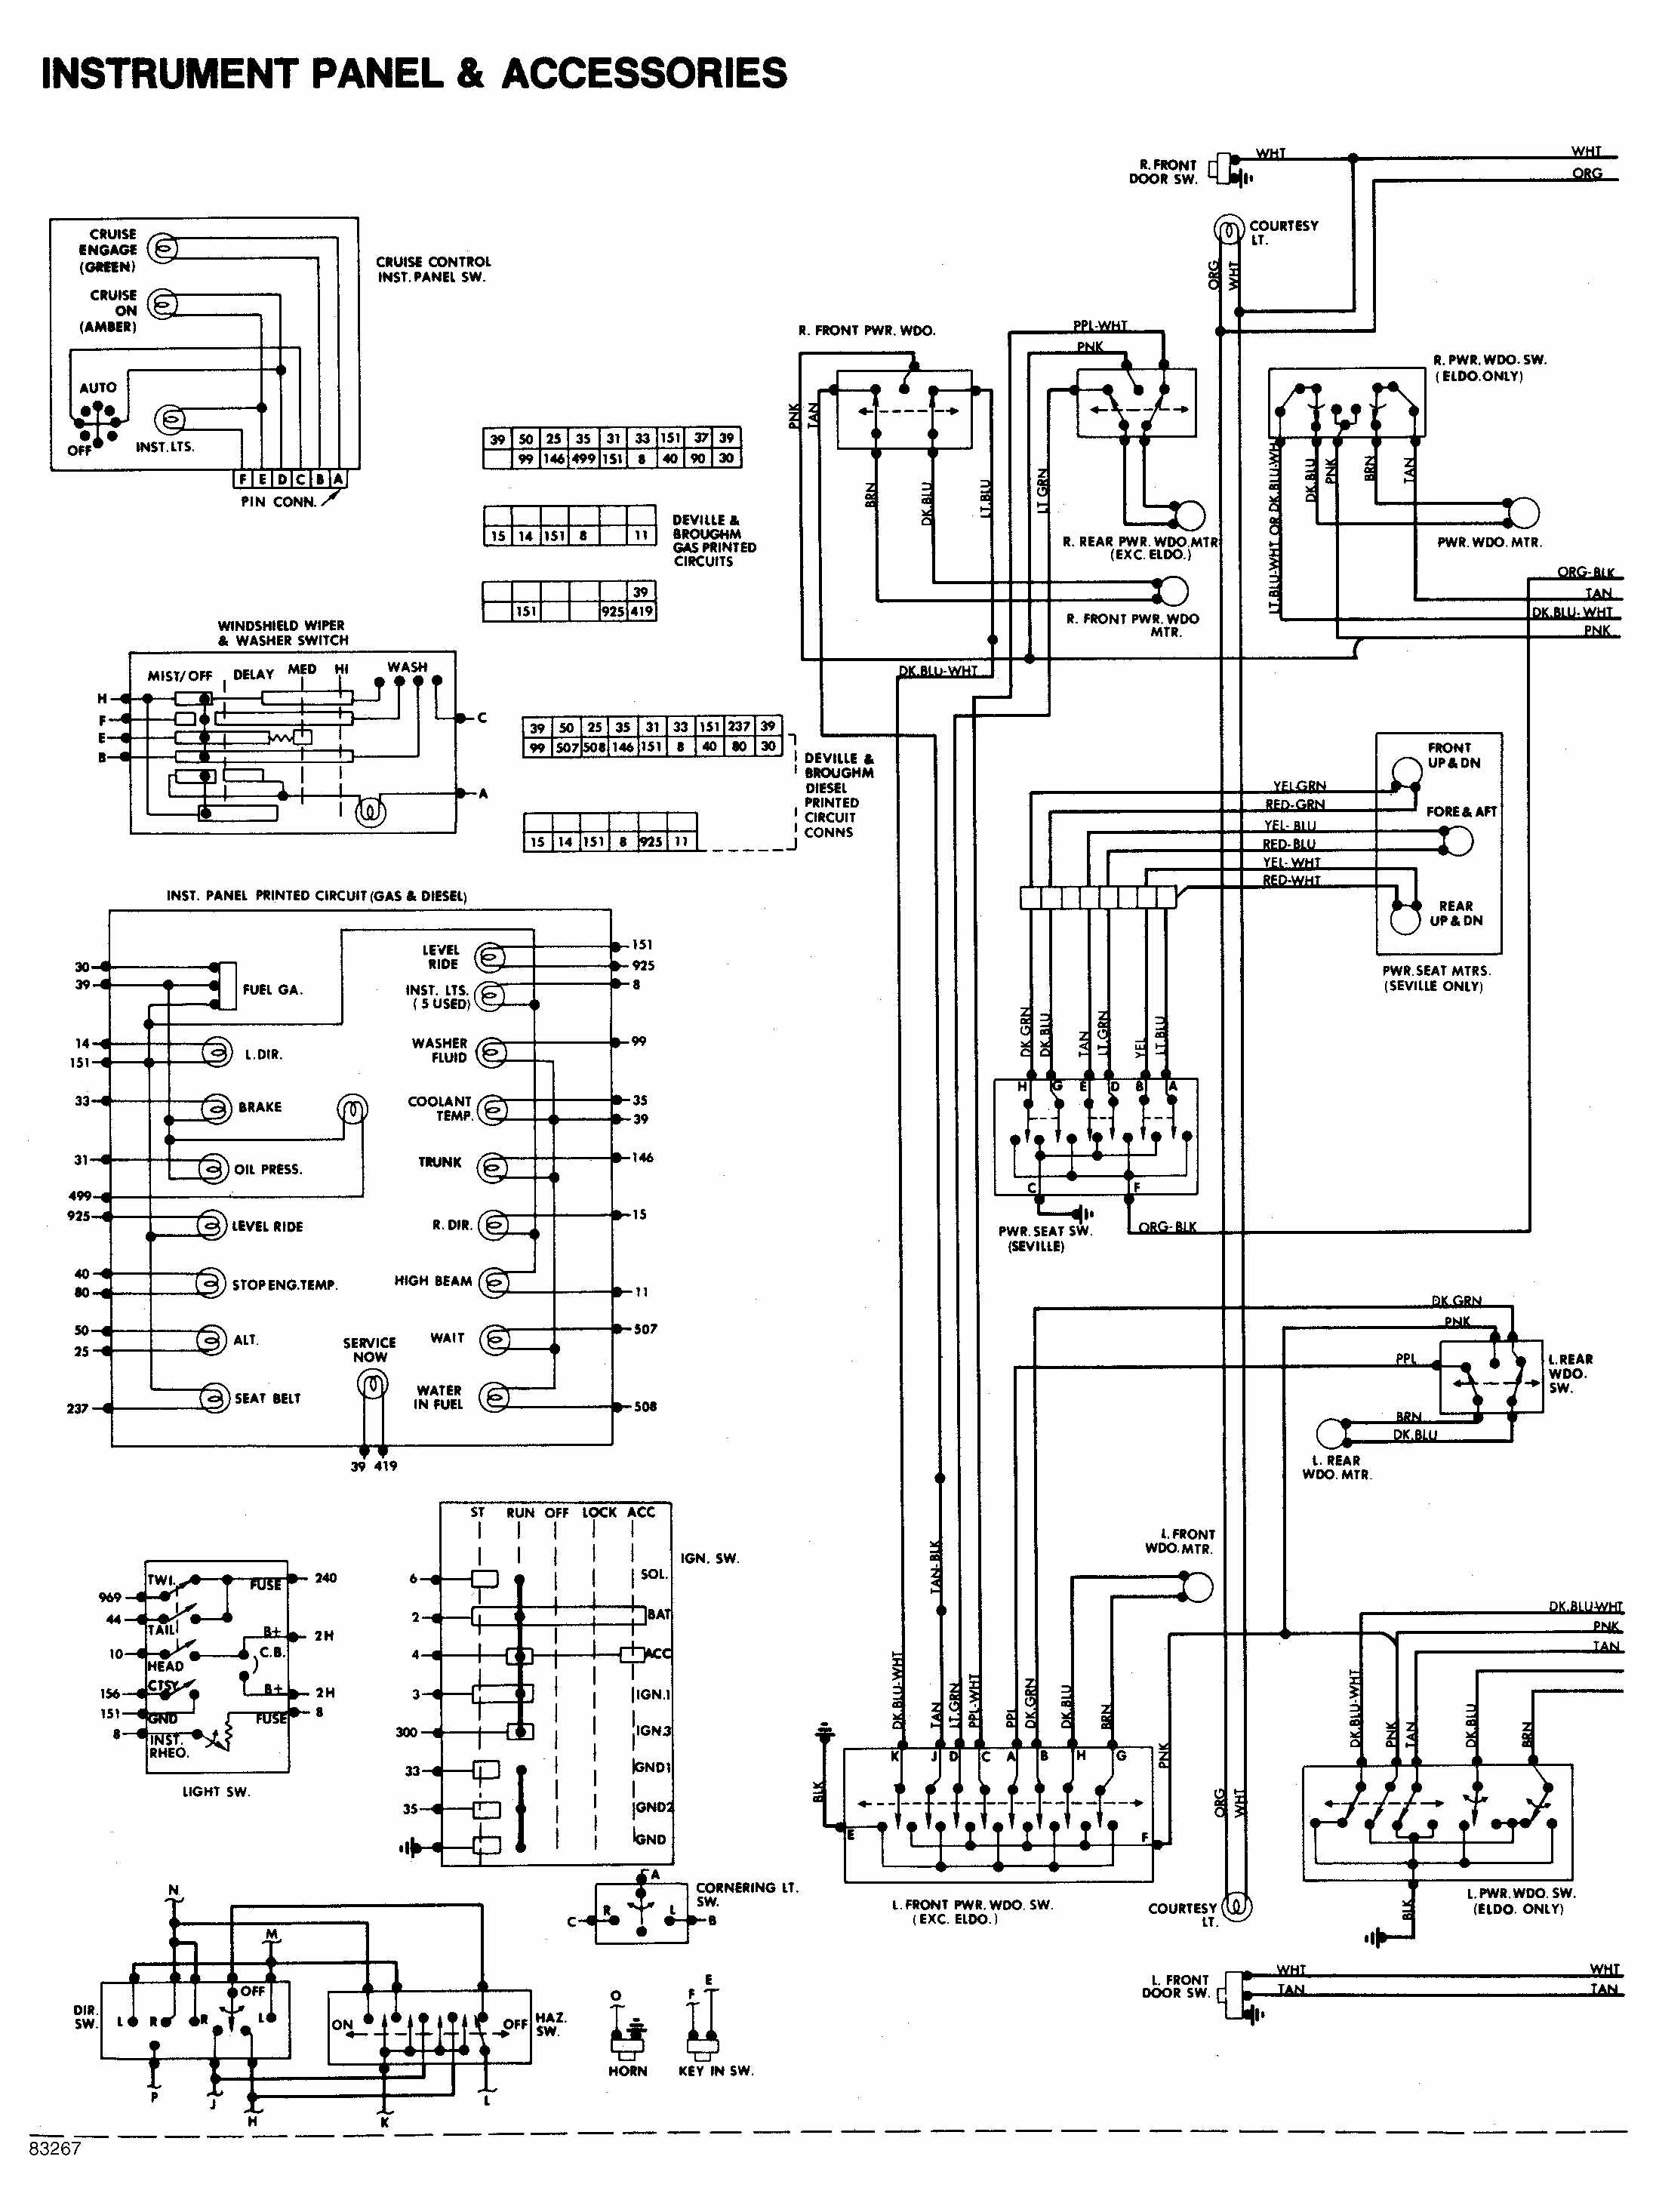 tail light wiring diagram on 1984 lincoln continental wiring diagram